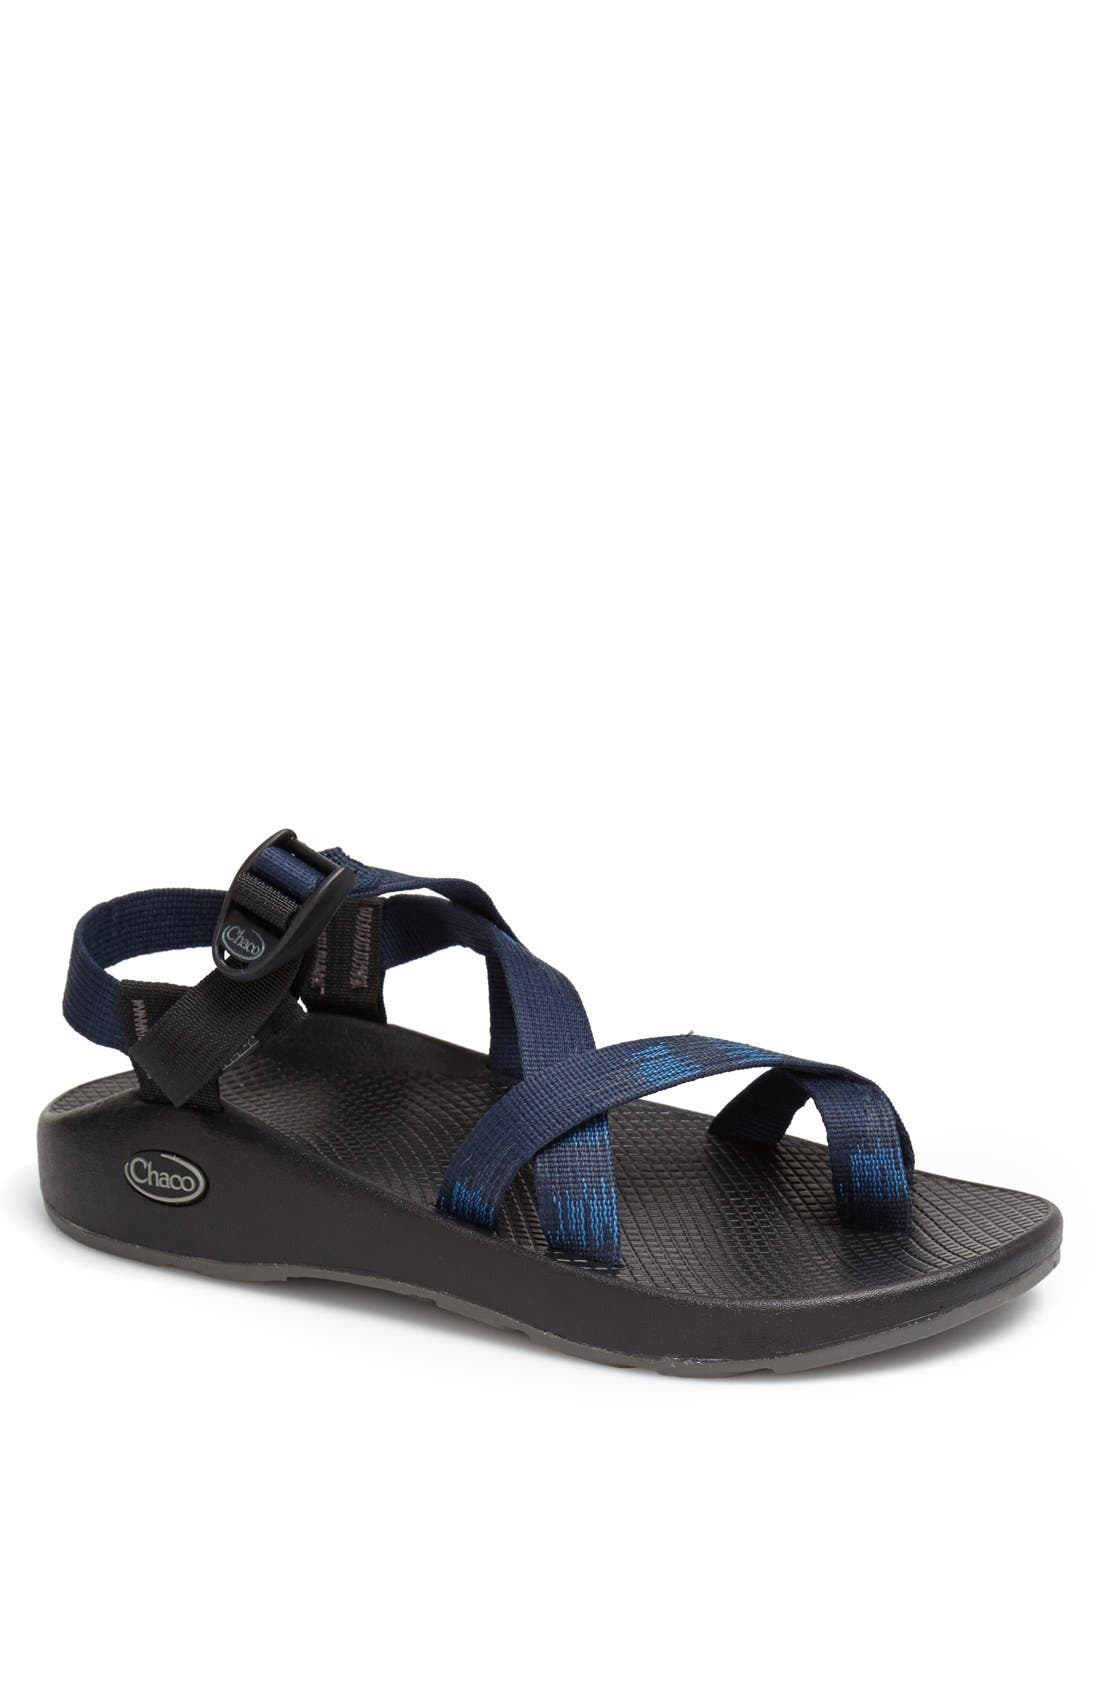 Alternate Image 1 Selected - Chaco 'Z/2 Yampa' Sandal